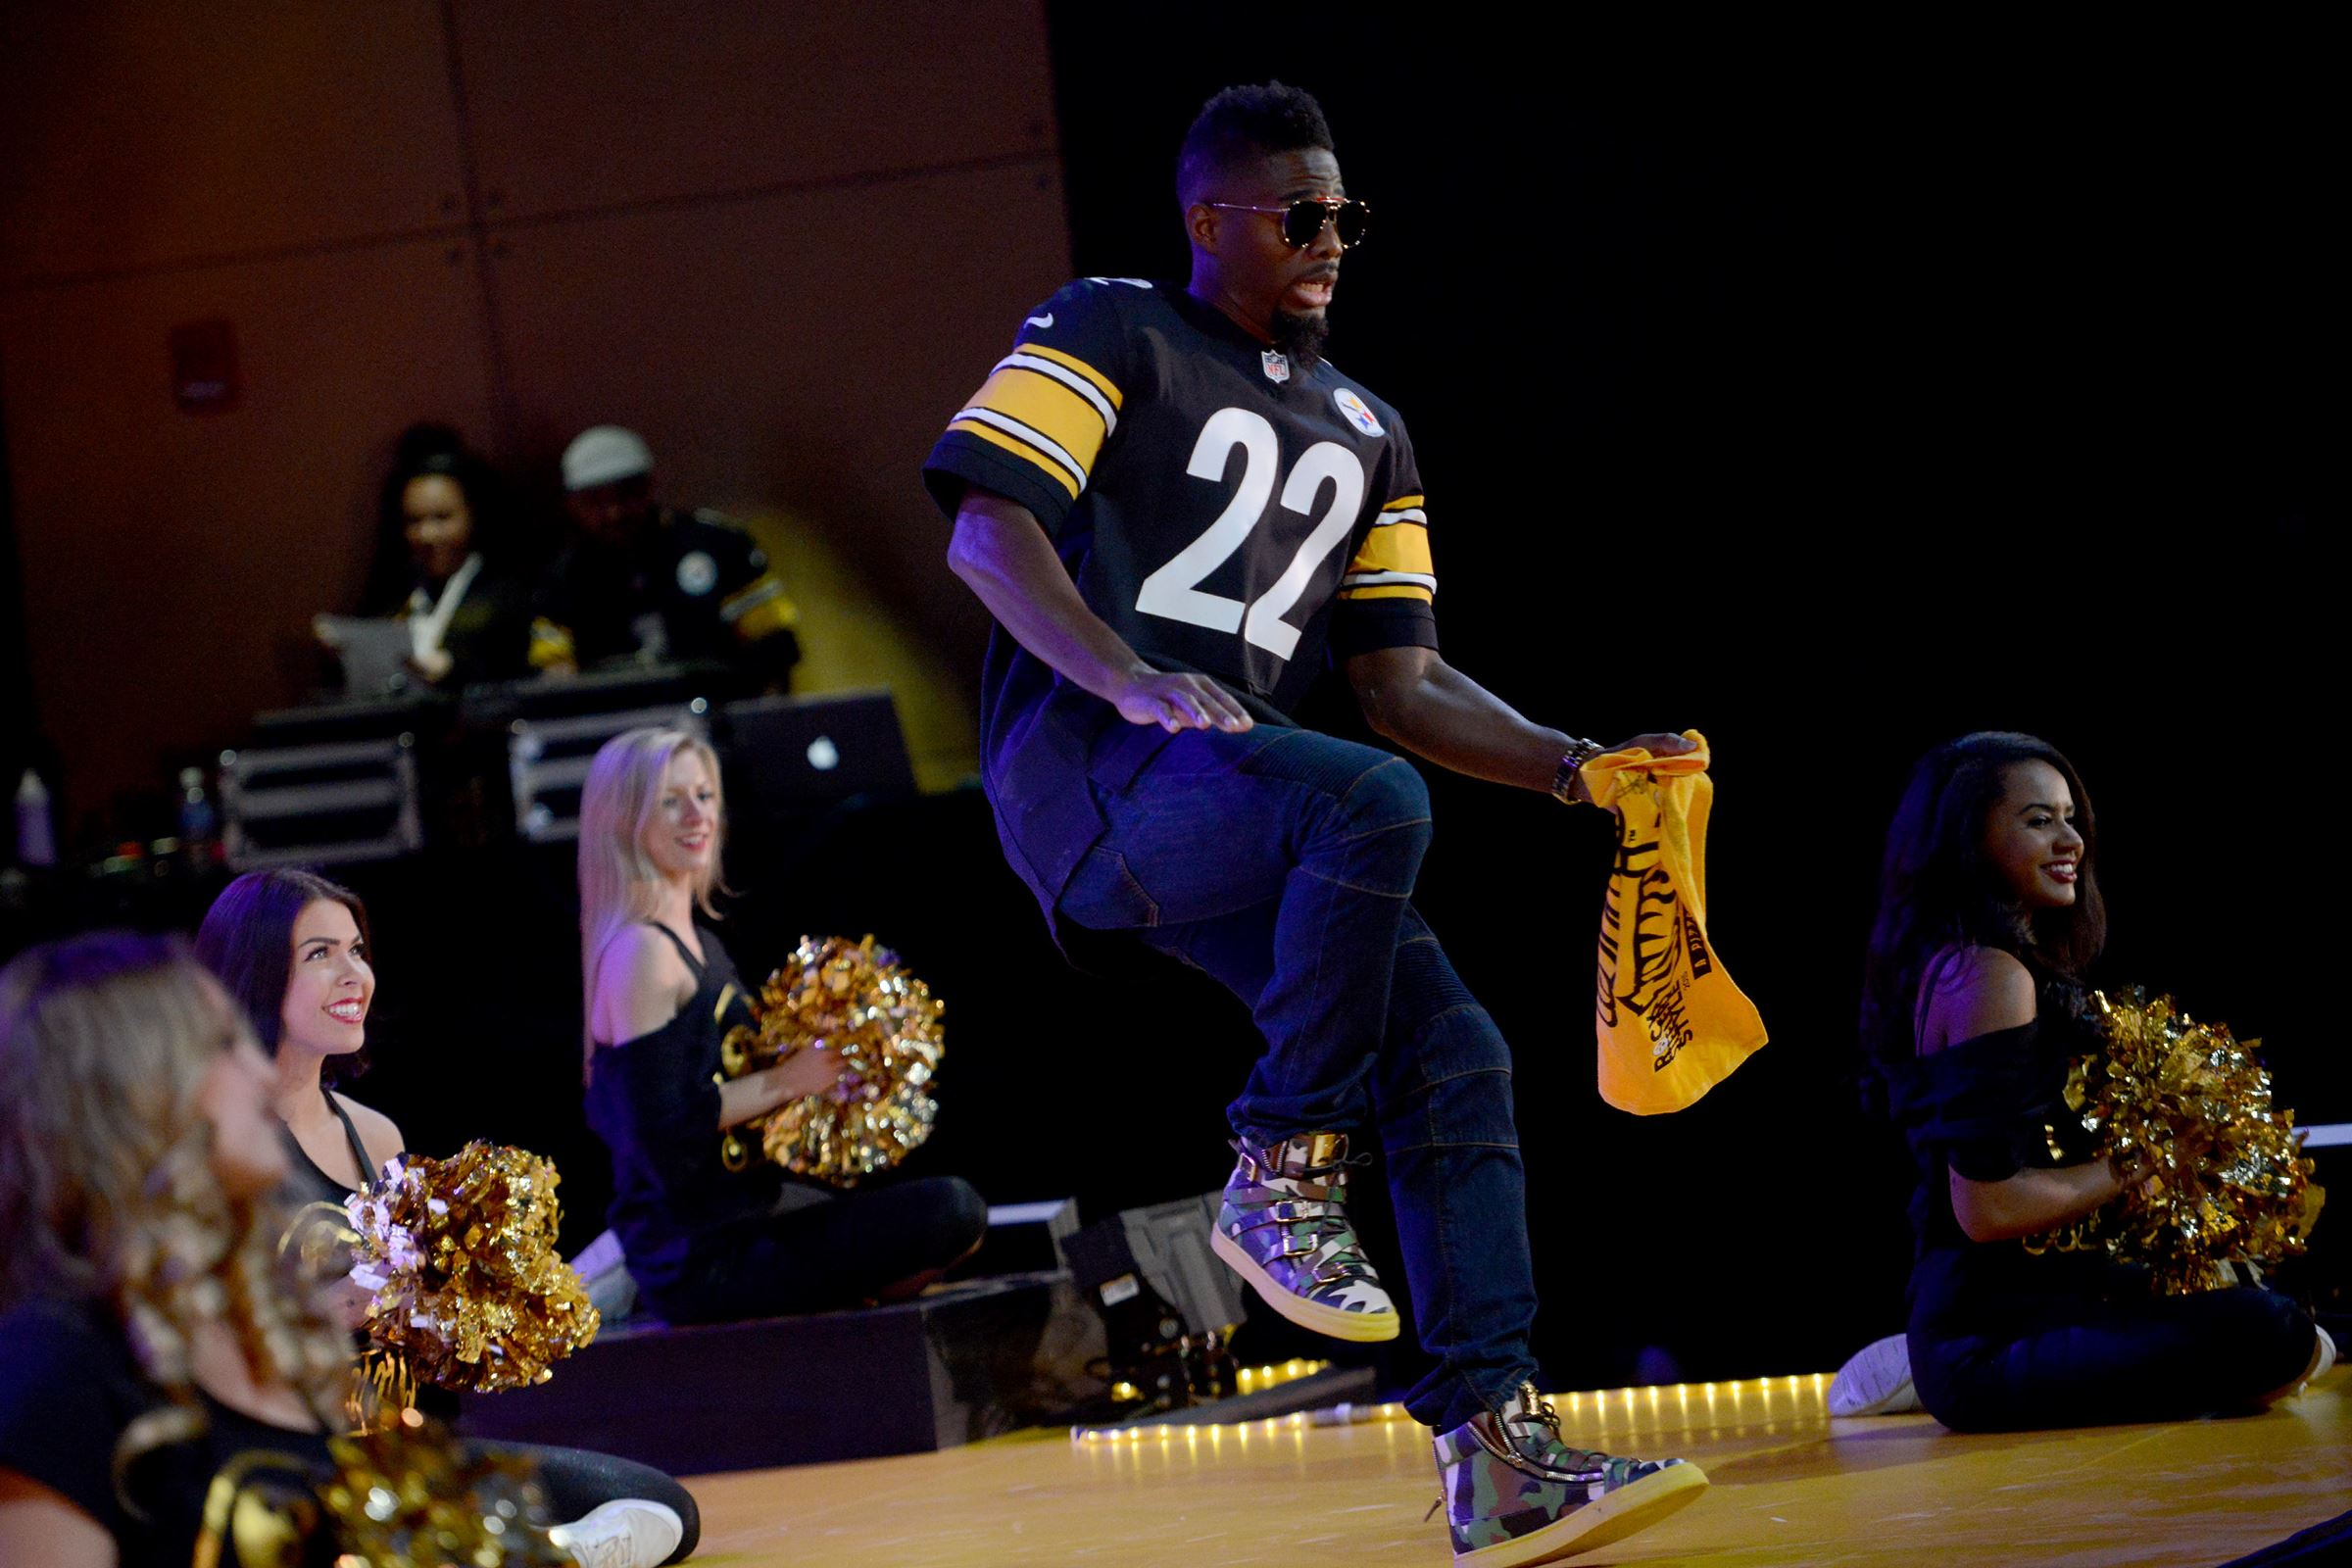 Rock Steelers Style 2015 Held At Stage Ae Pittsburgh Post Gazette